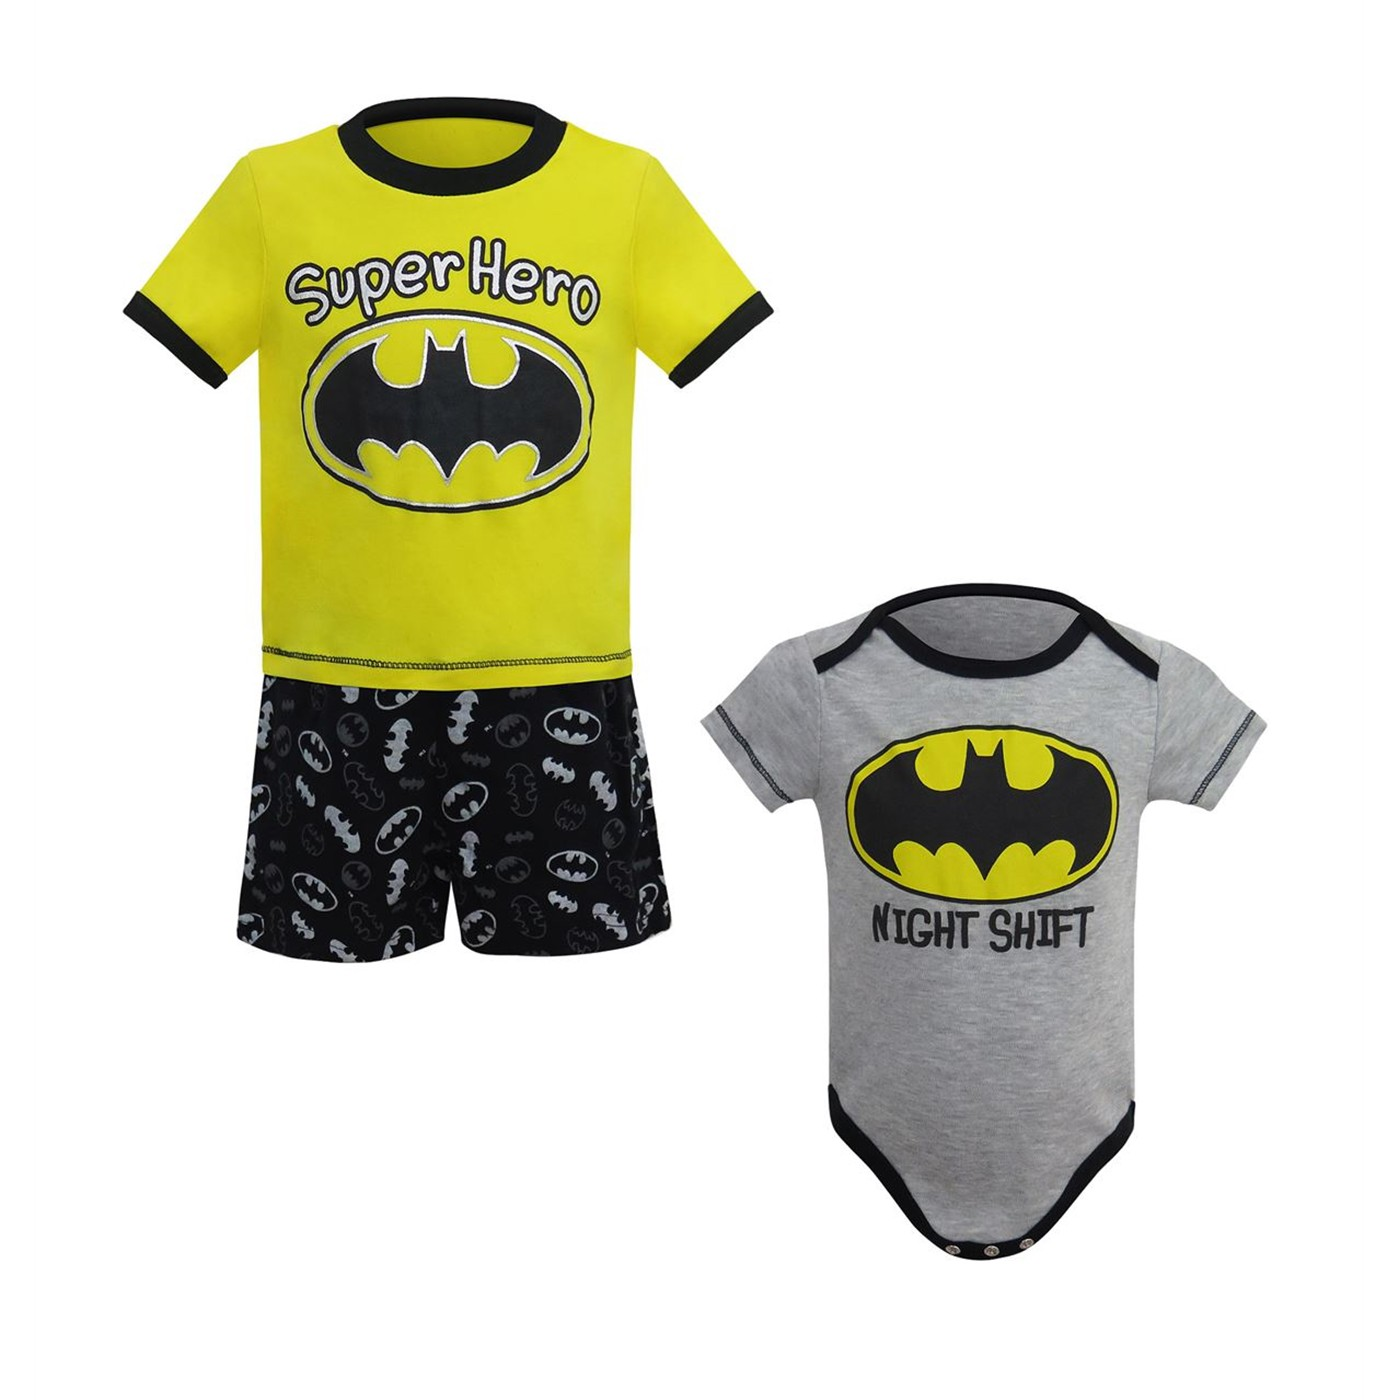 Batman Superhero Night Shift Newborn 3-Piece Set